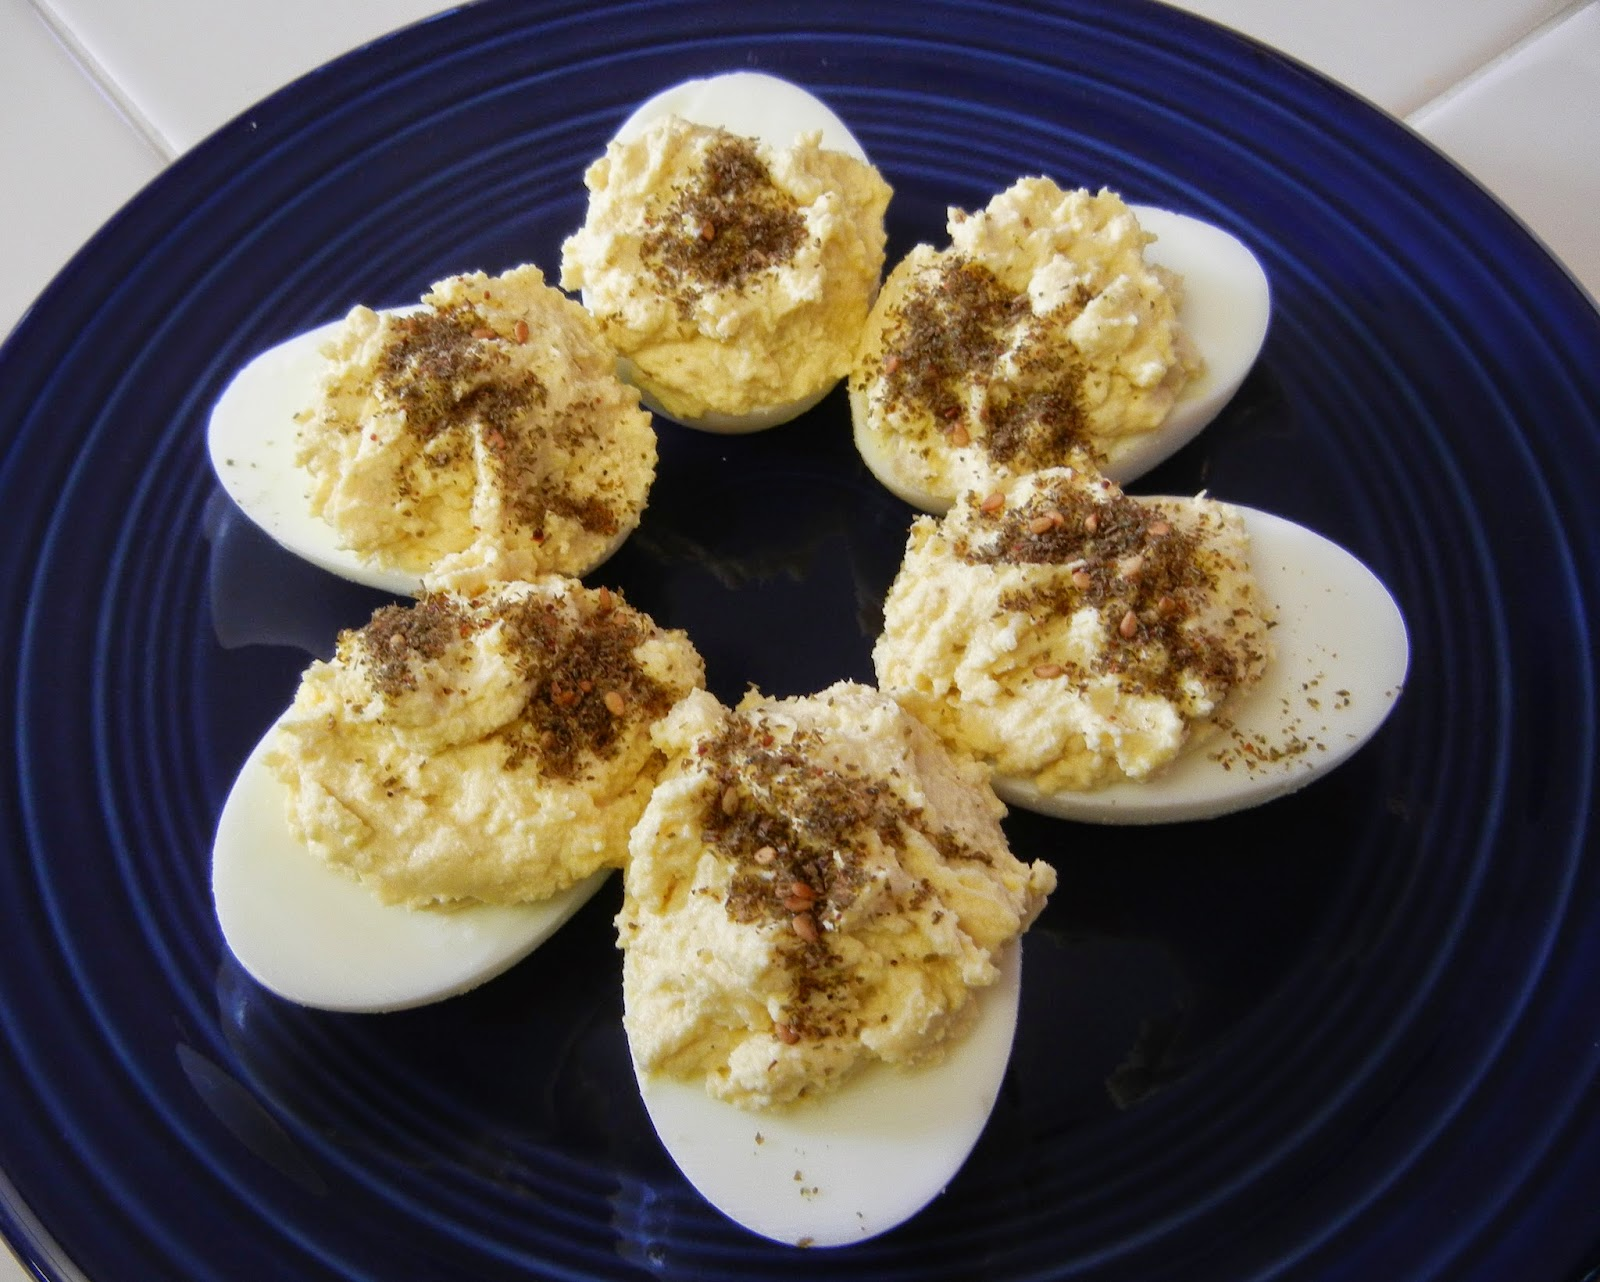 Eggface%2BZaatar%2BHummus%2BDeviled%2BEggs%2BDay Weight Loss Recipes Happy National Deviled Egg Day